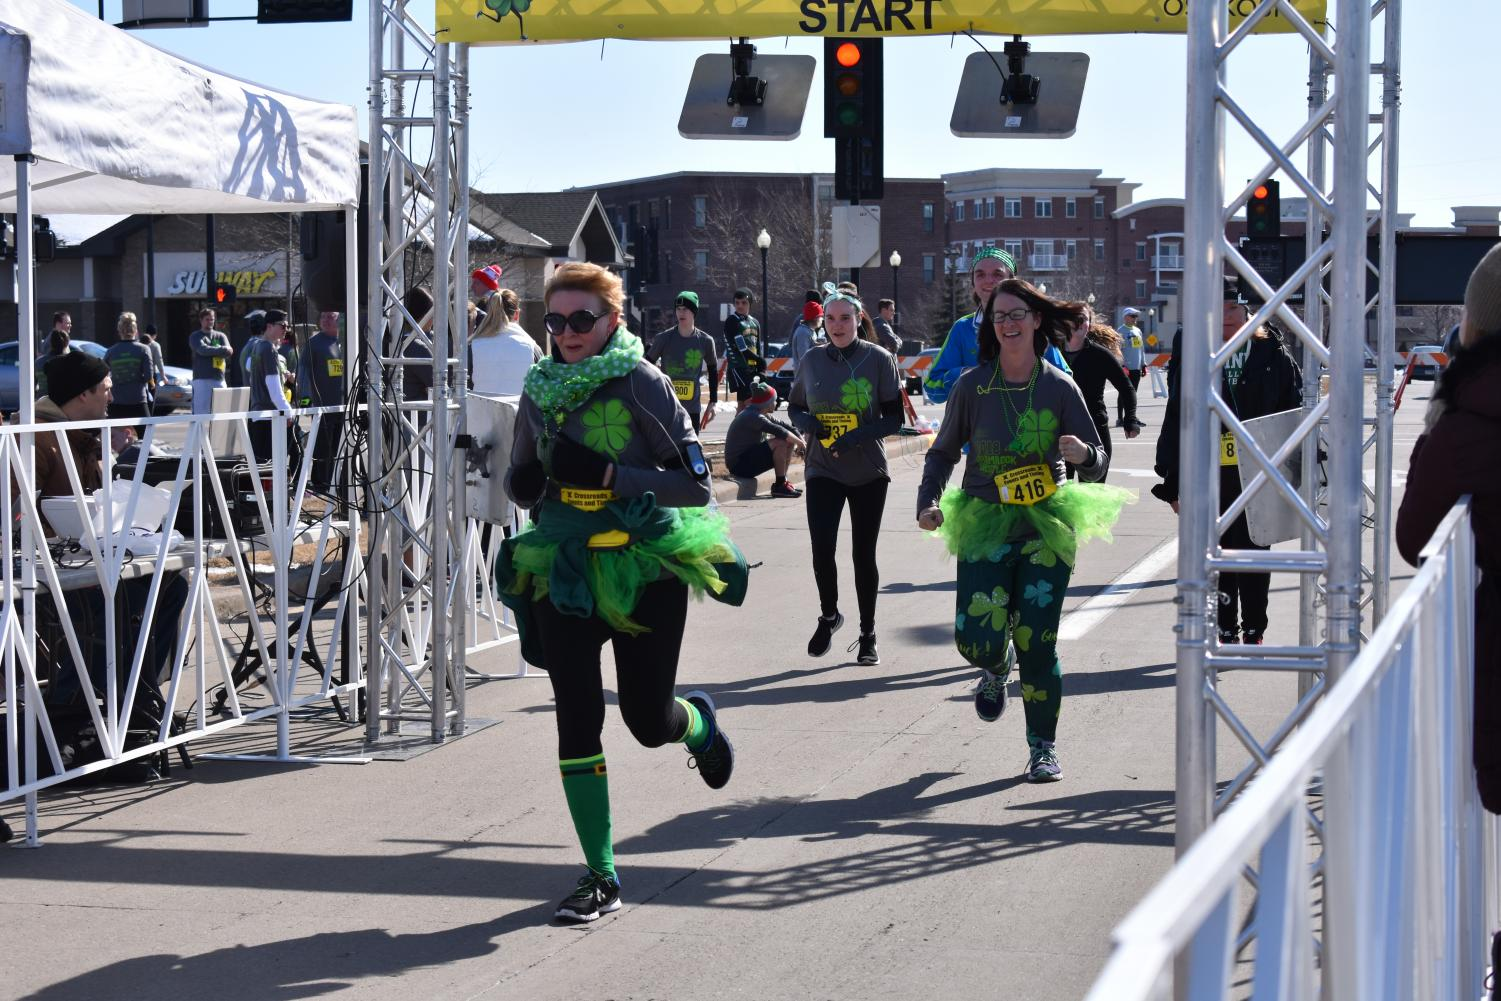 Oshkosh community members participate in the 2018 Spring Shamrock Shuffle and enjoy all of the festivities during the 5k Run/Walk on Saturday.